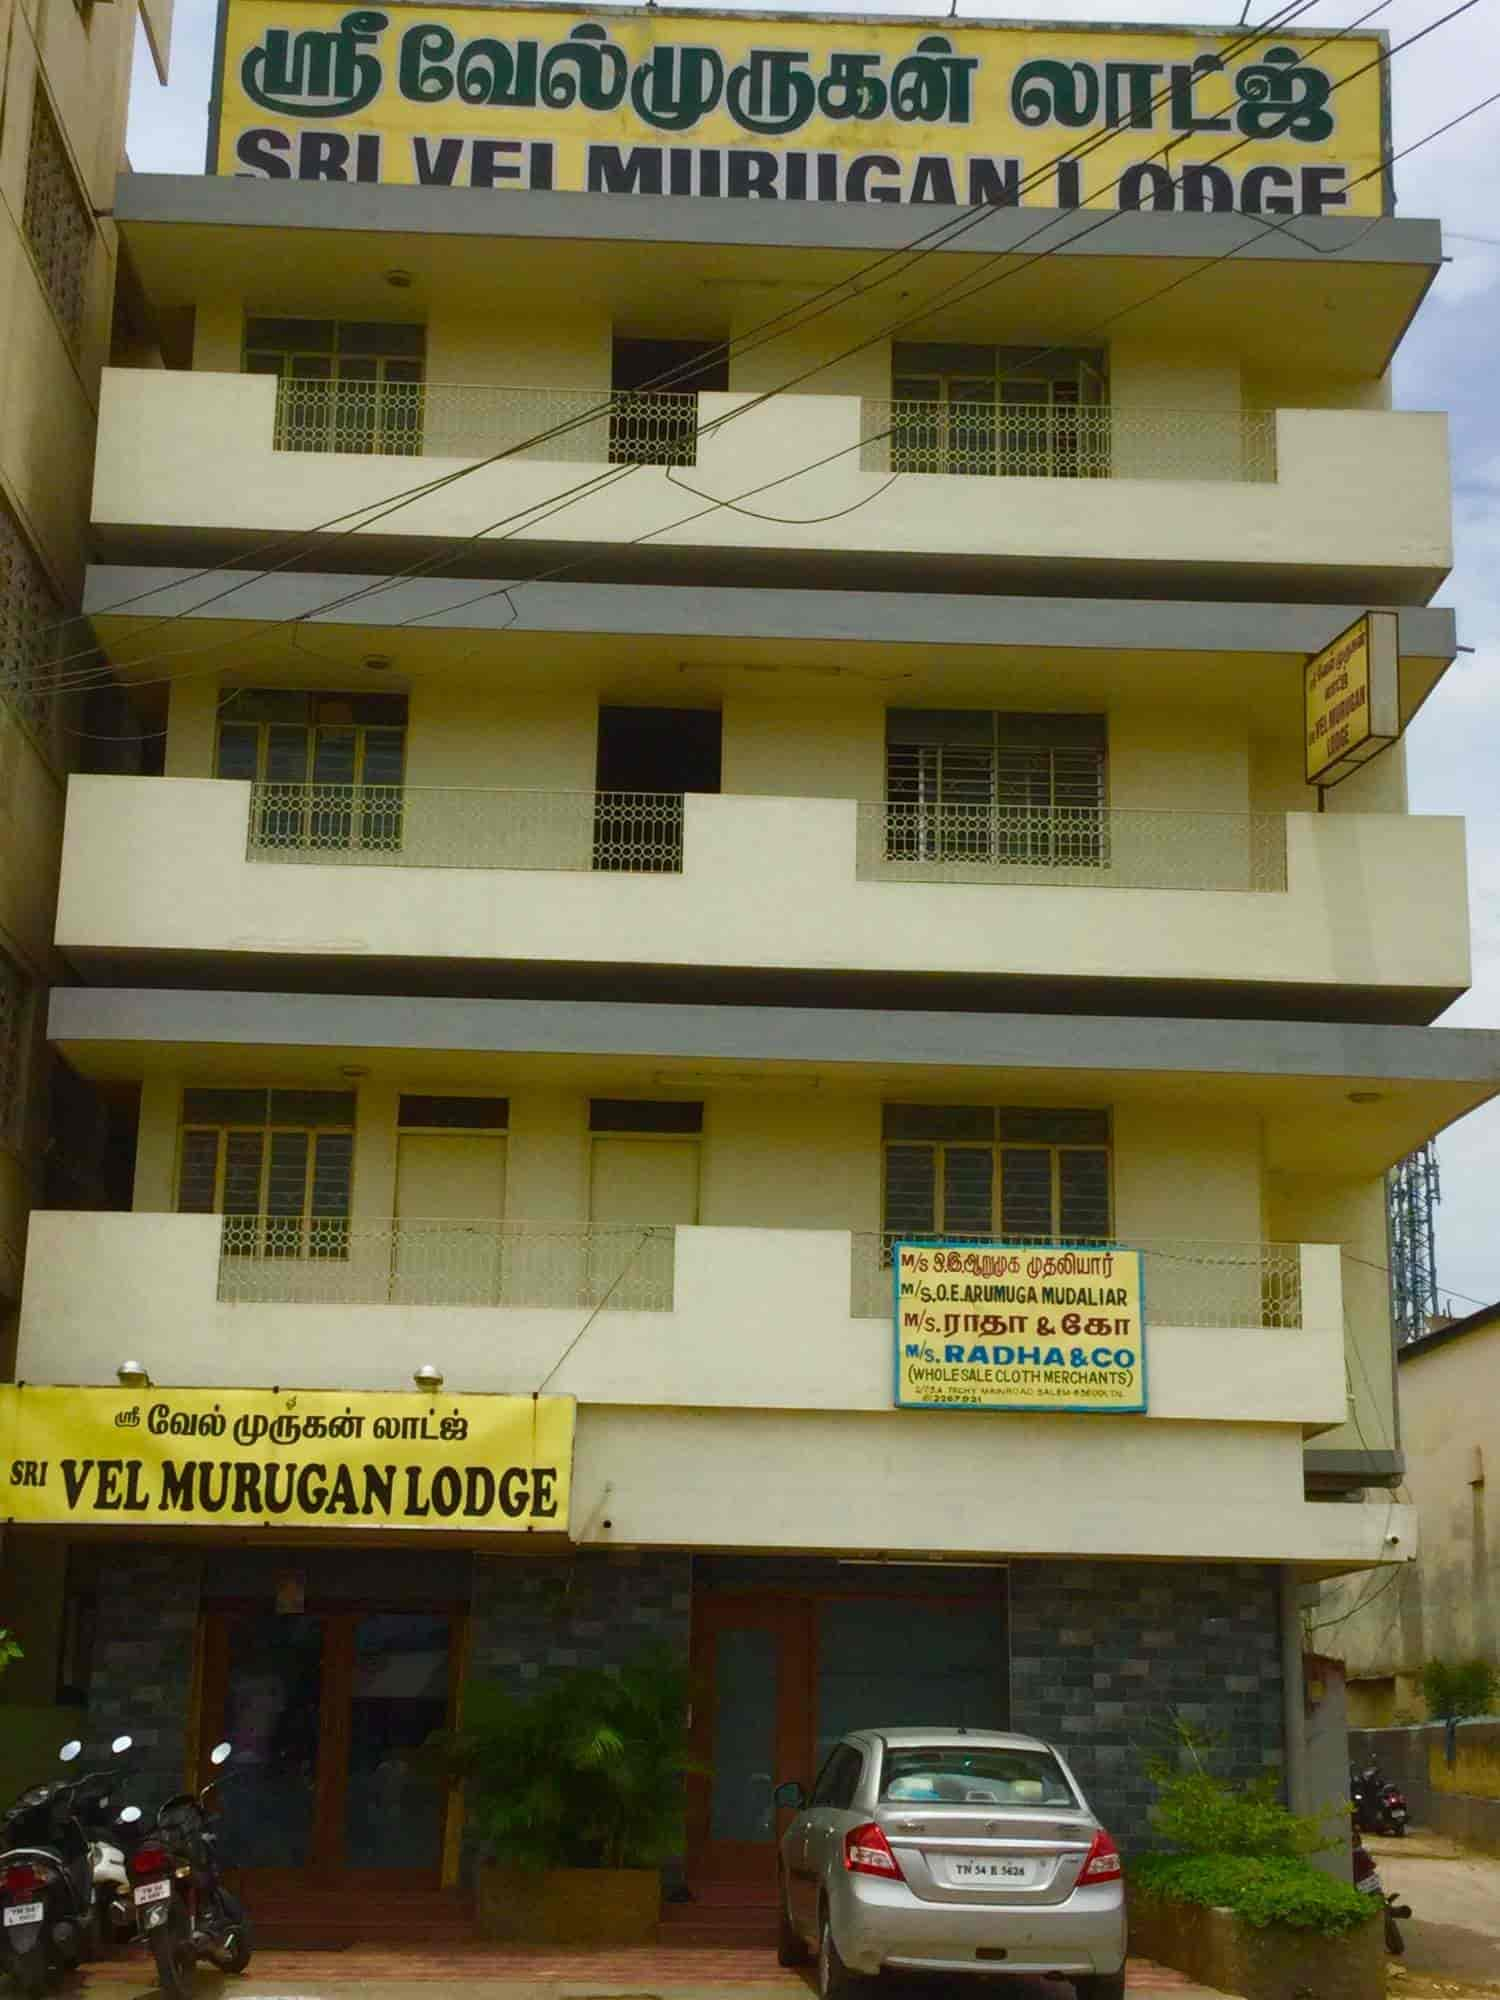 Sri velmurugan lodge hotels in salem justdial solutioingenieria Gallery